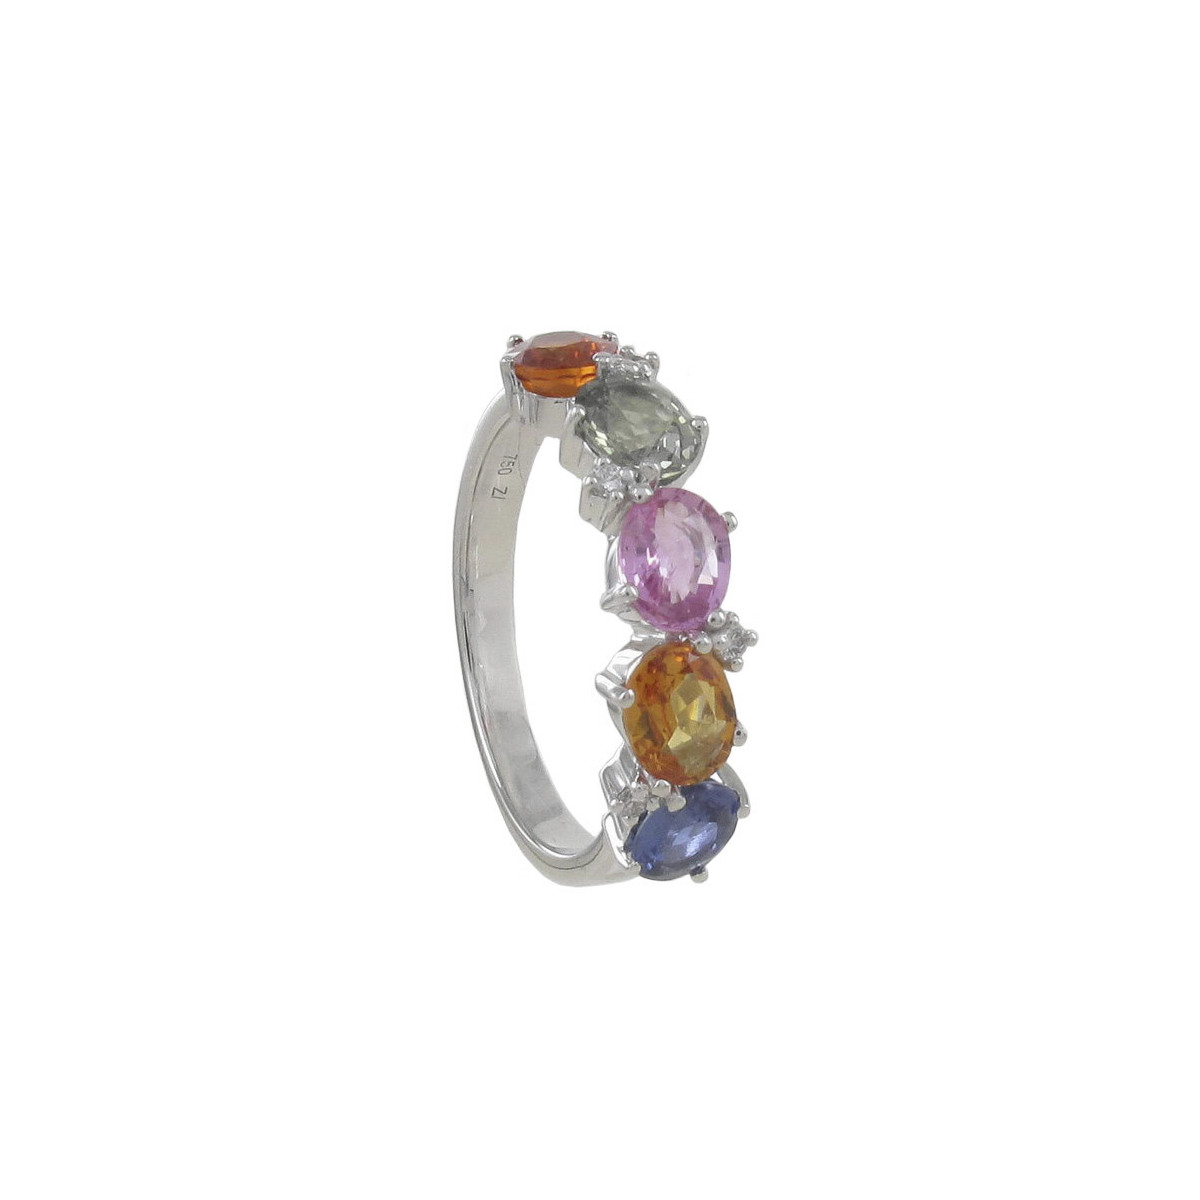 GOLD DIAMONDS AND COLORS SAPPHIRES RING